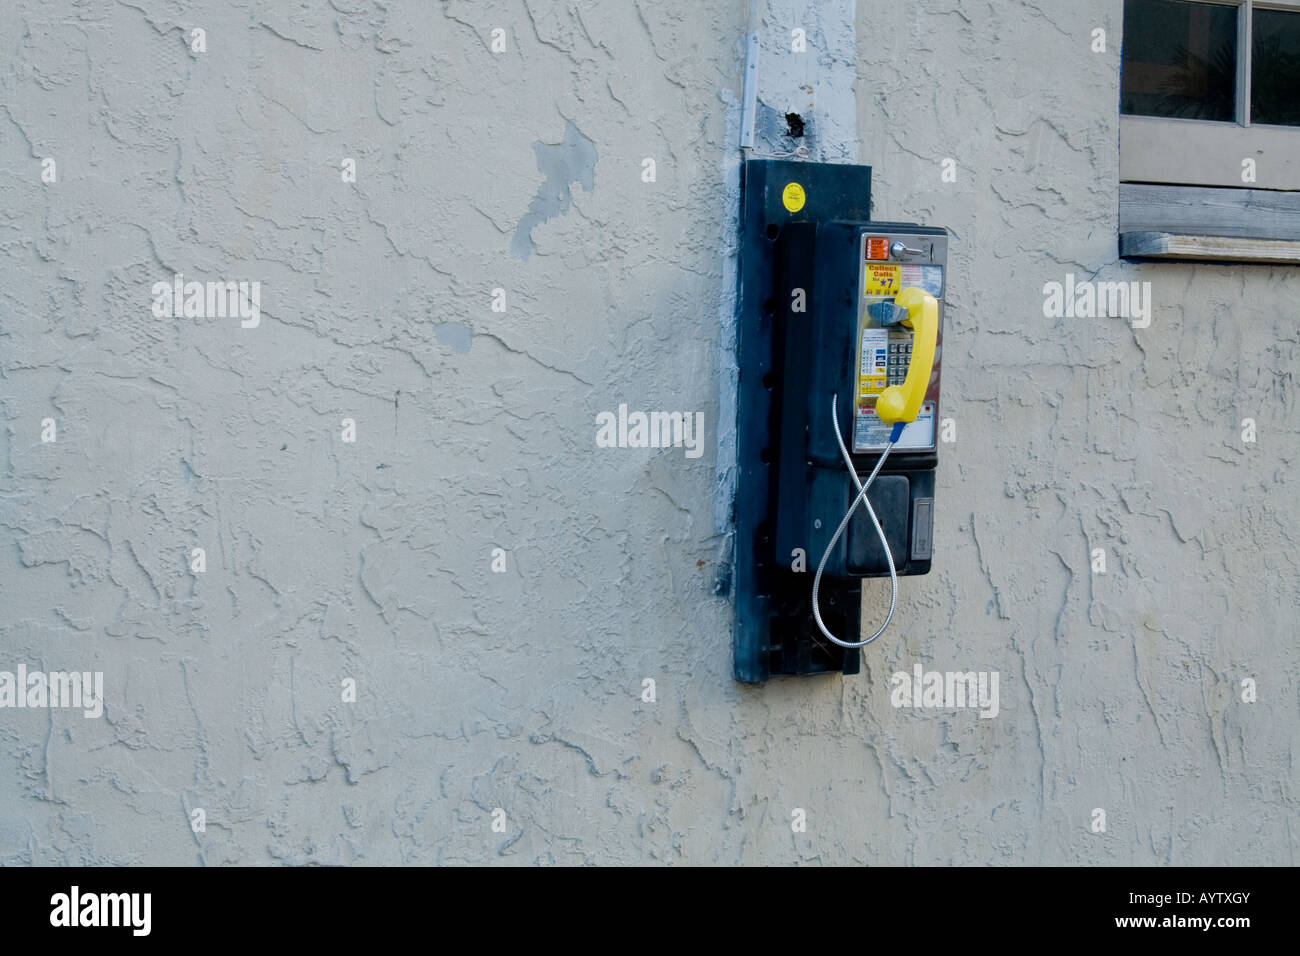 Old yellow payphone on a wall - Stock Image